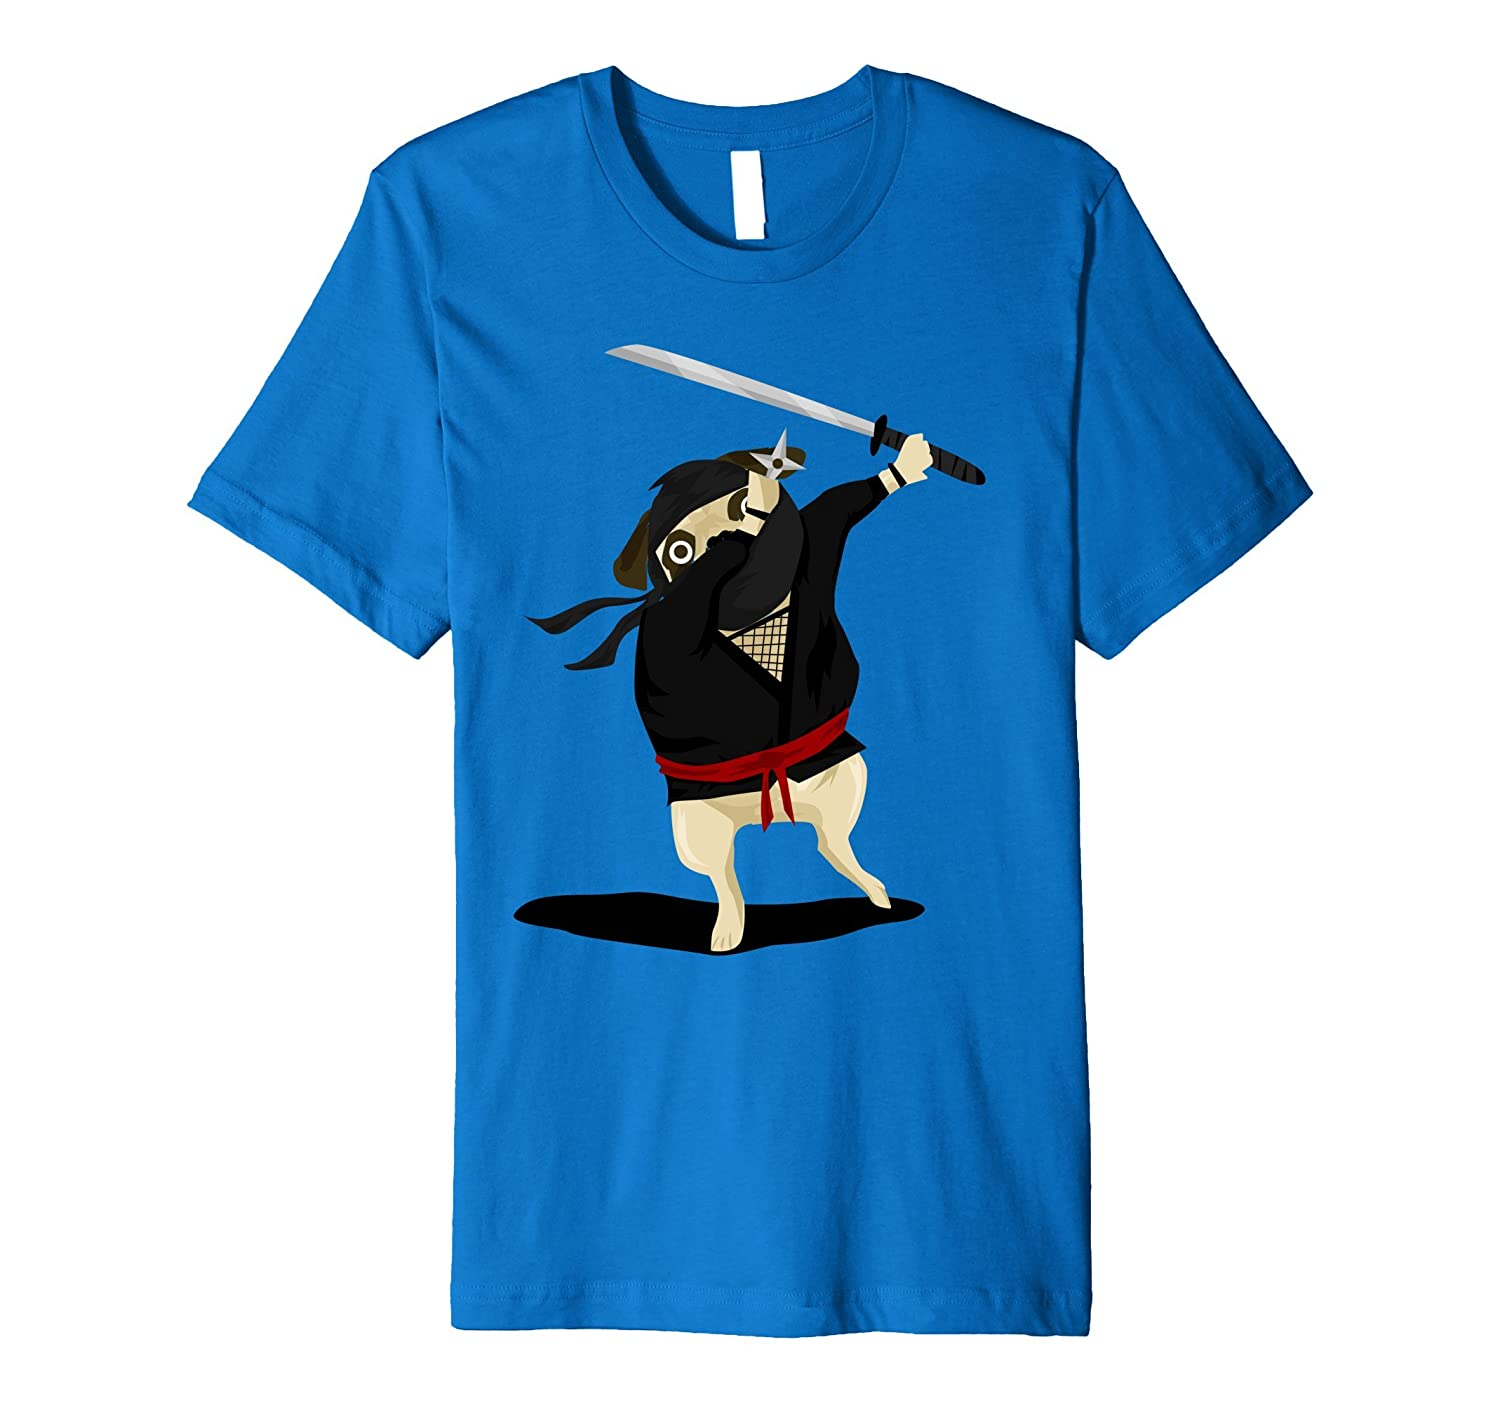 Dabbing Pug Tshirt, Funny Ninja Dog Shirt for Kids-AZP